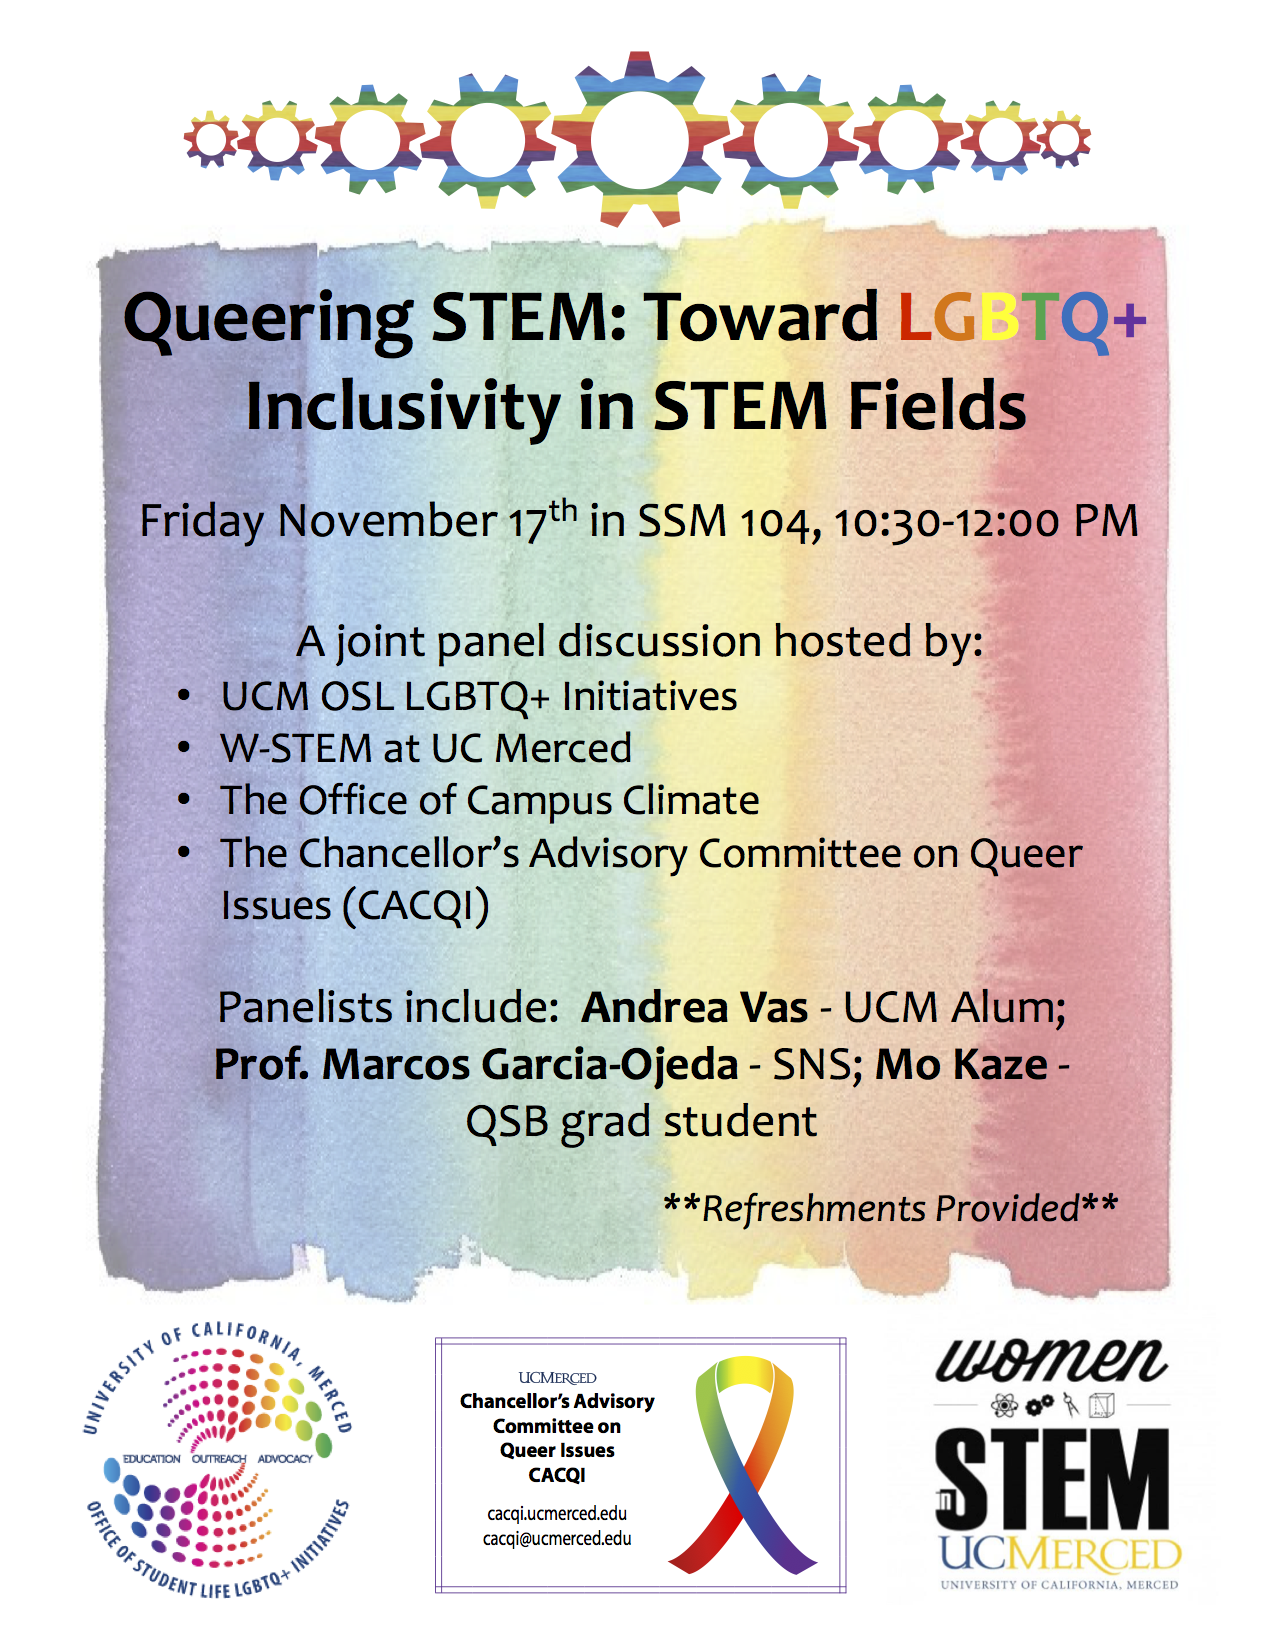 Queering STEM: towards LGBTQ+ inclusivity in STEM fields